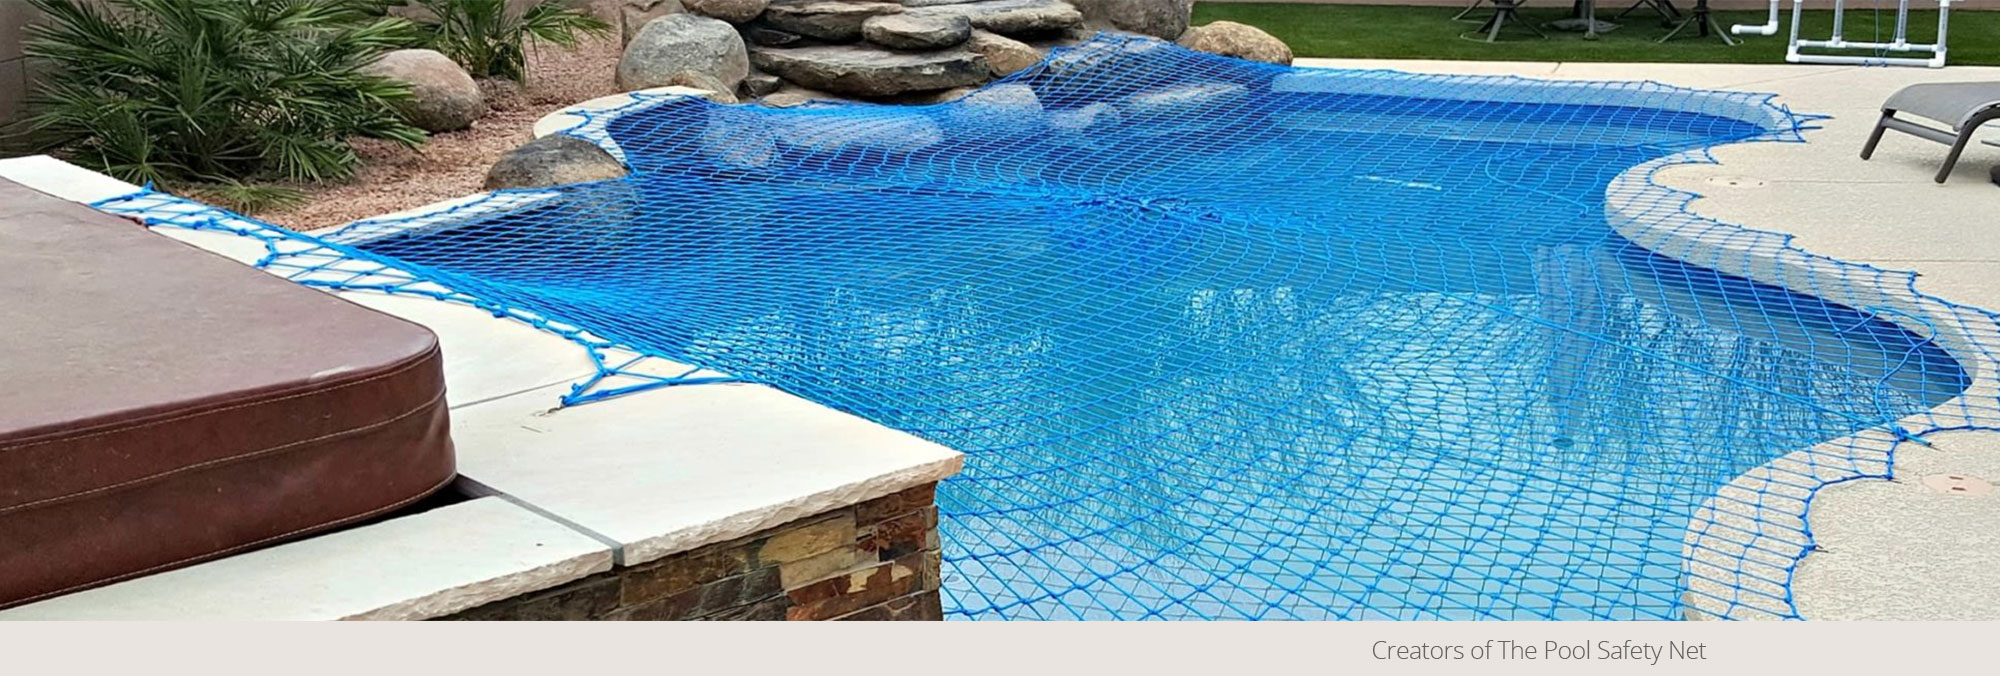 Creators-of-The-Pool-Safety-Net